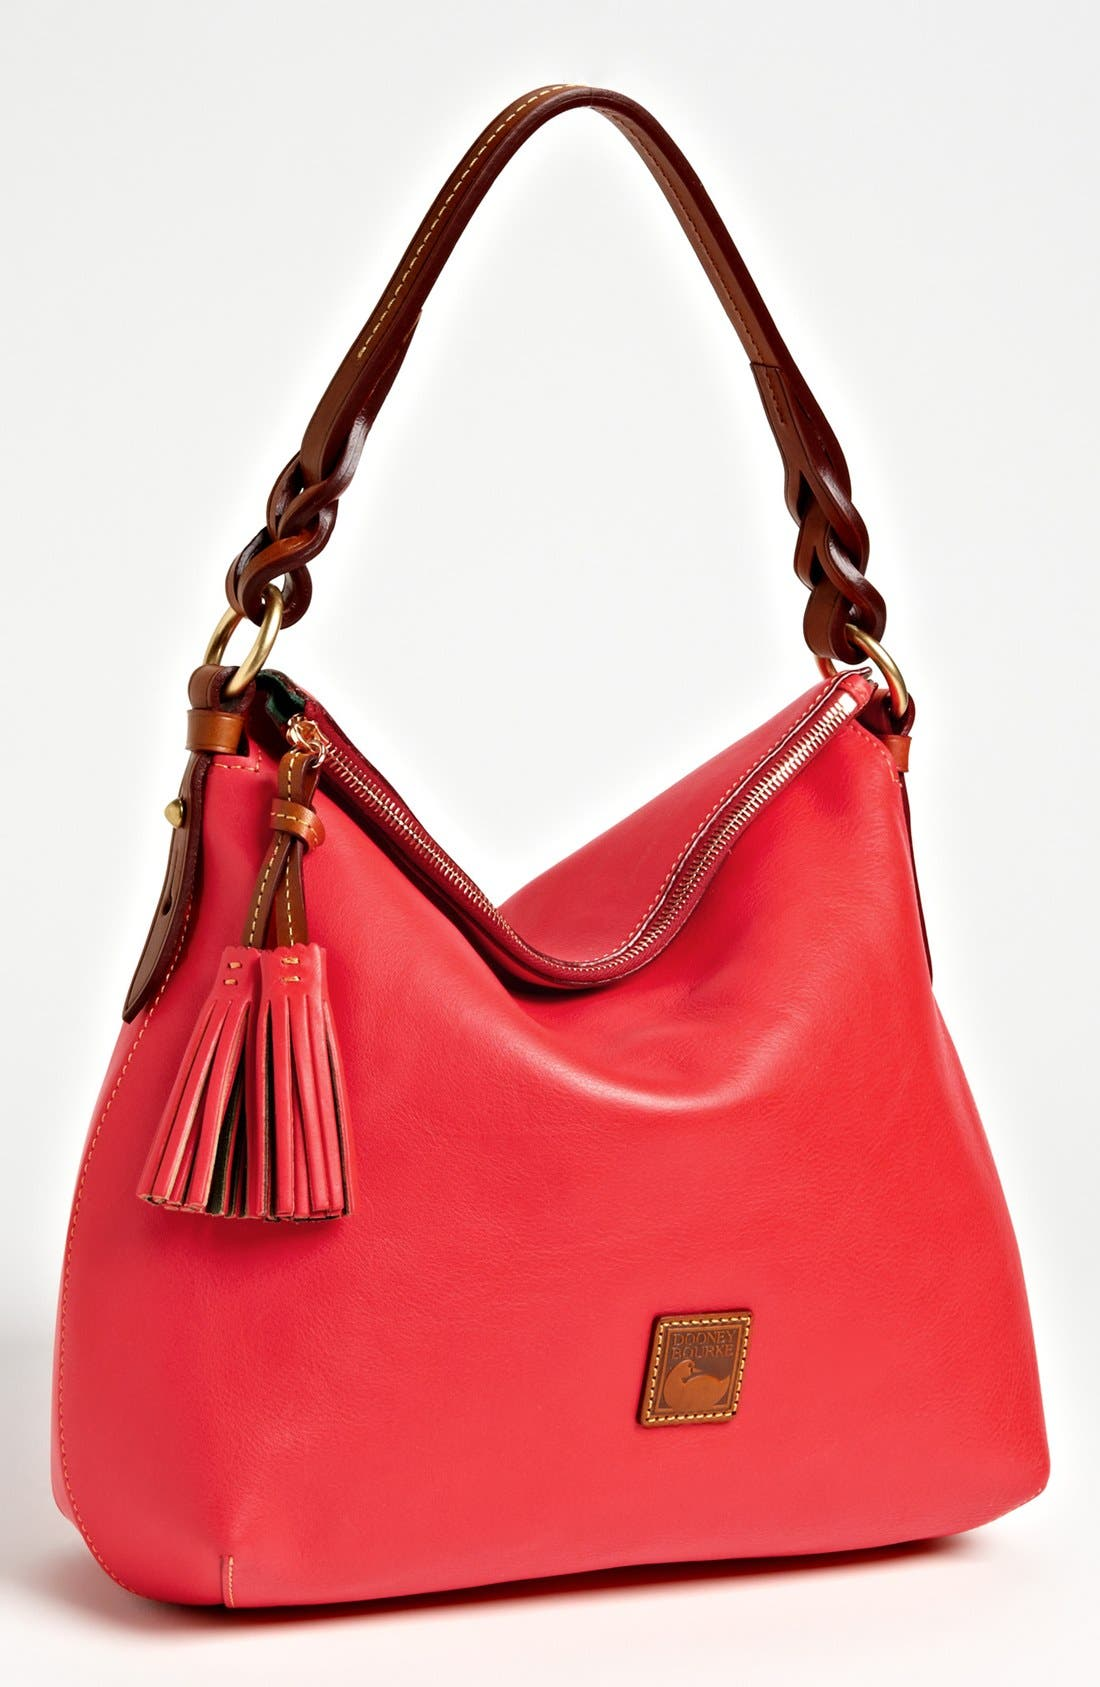 Main Image - Dooney & Bourke 'Twist Strap' Hobo, Large